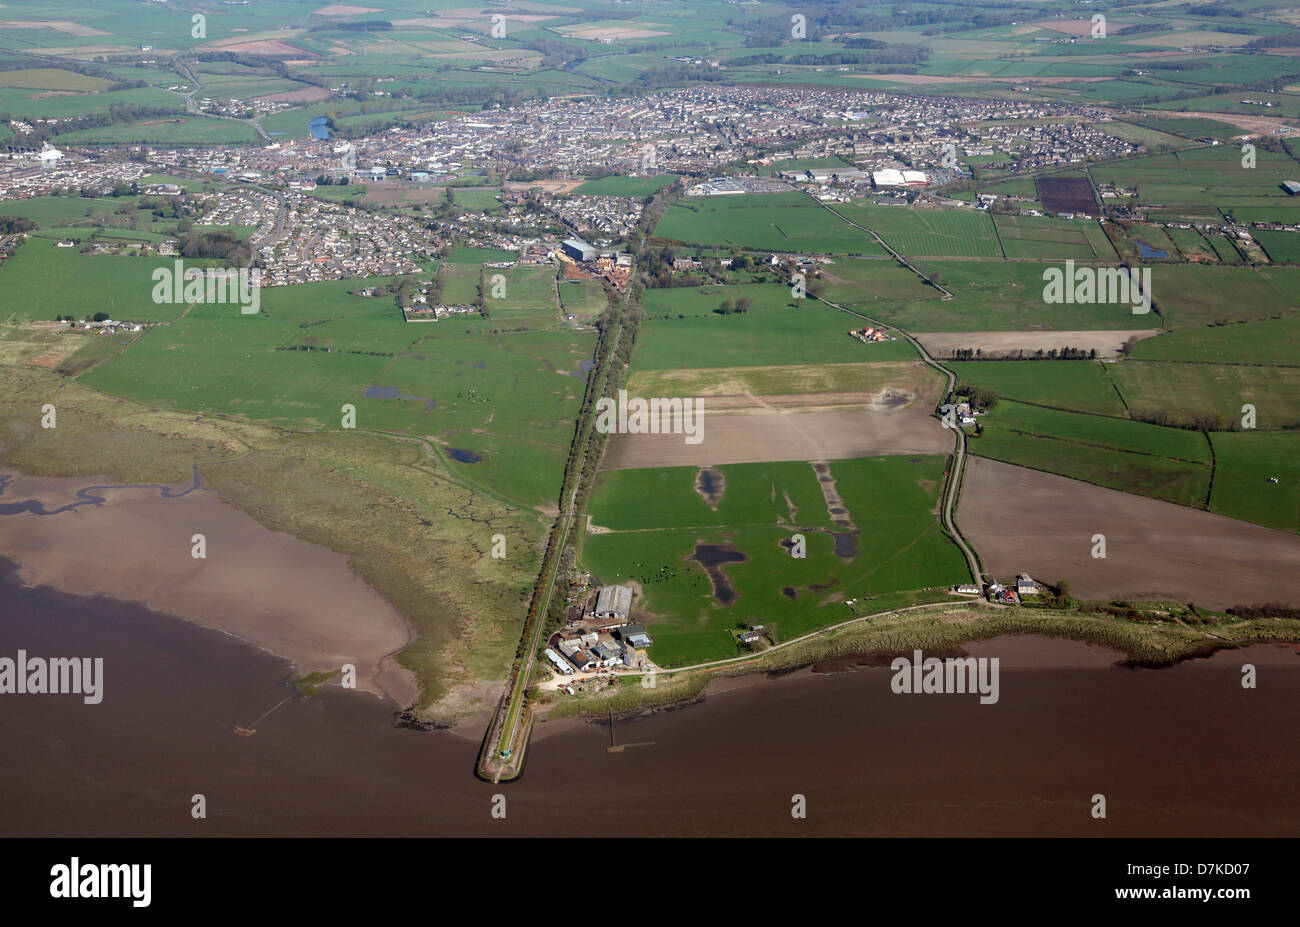 aerial view of Annan near Dumfries in the Solway Firth, South West Scotland - Stock Image